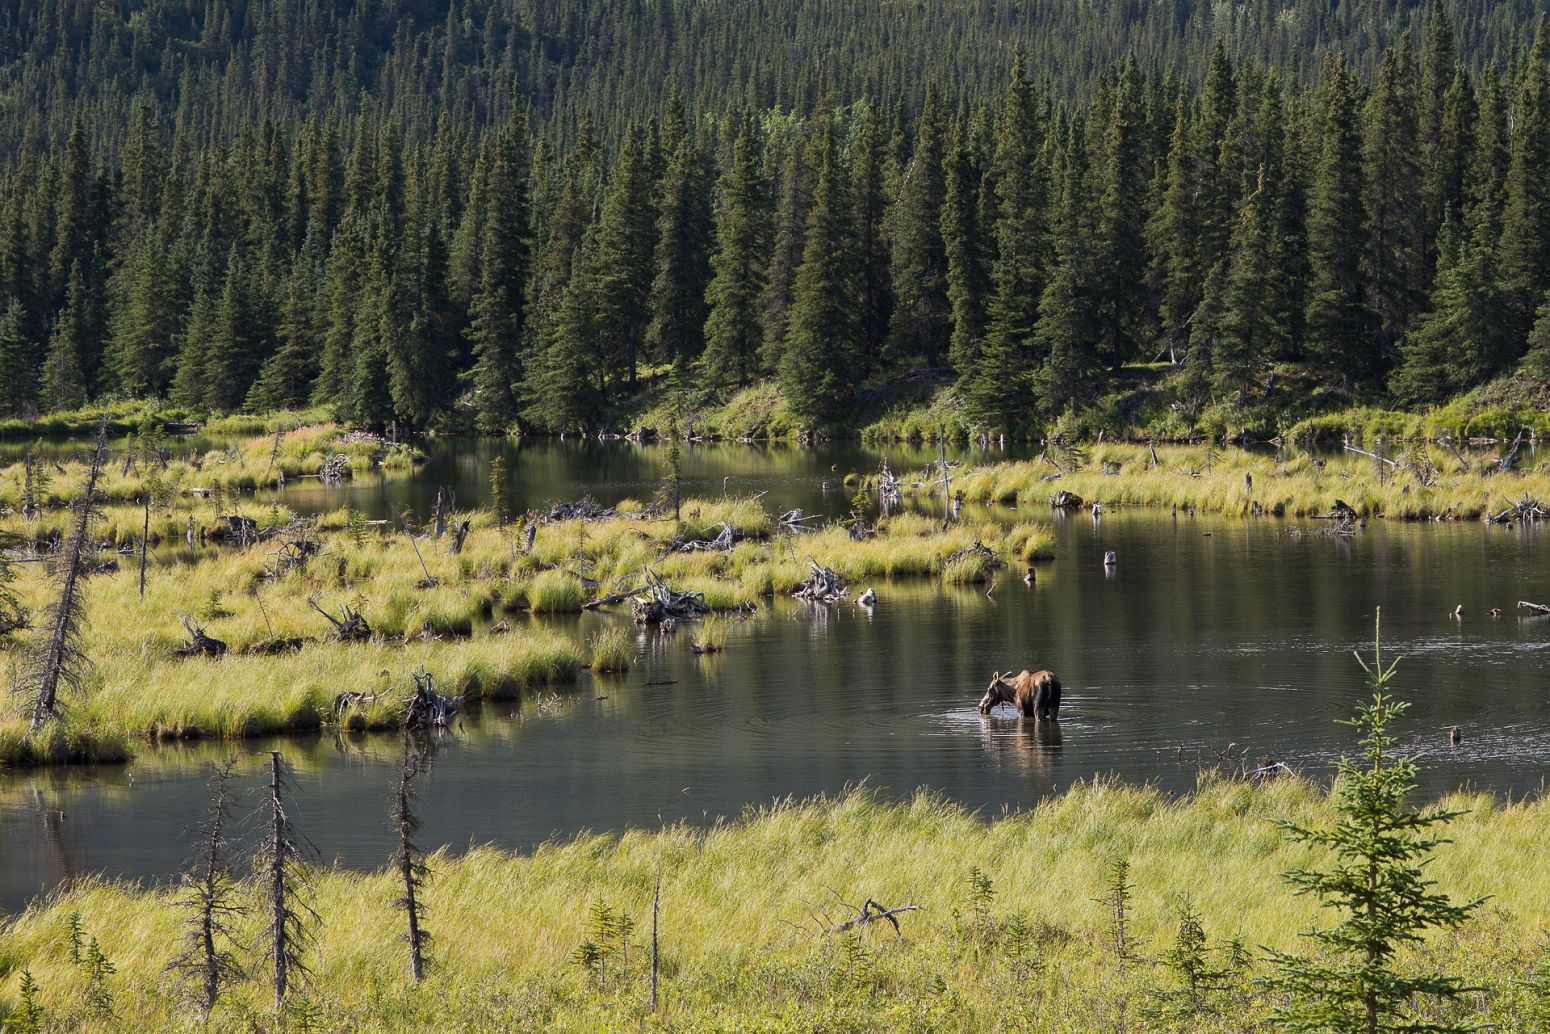 A moose taking a swim in Denali NP, Alaska, USA